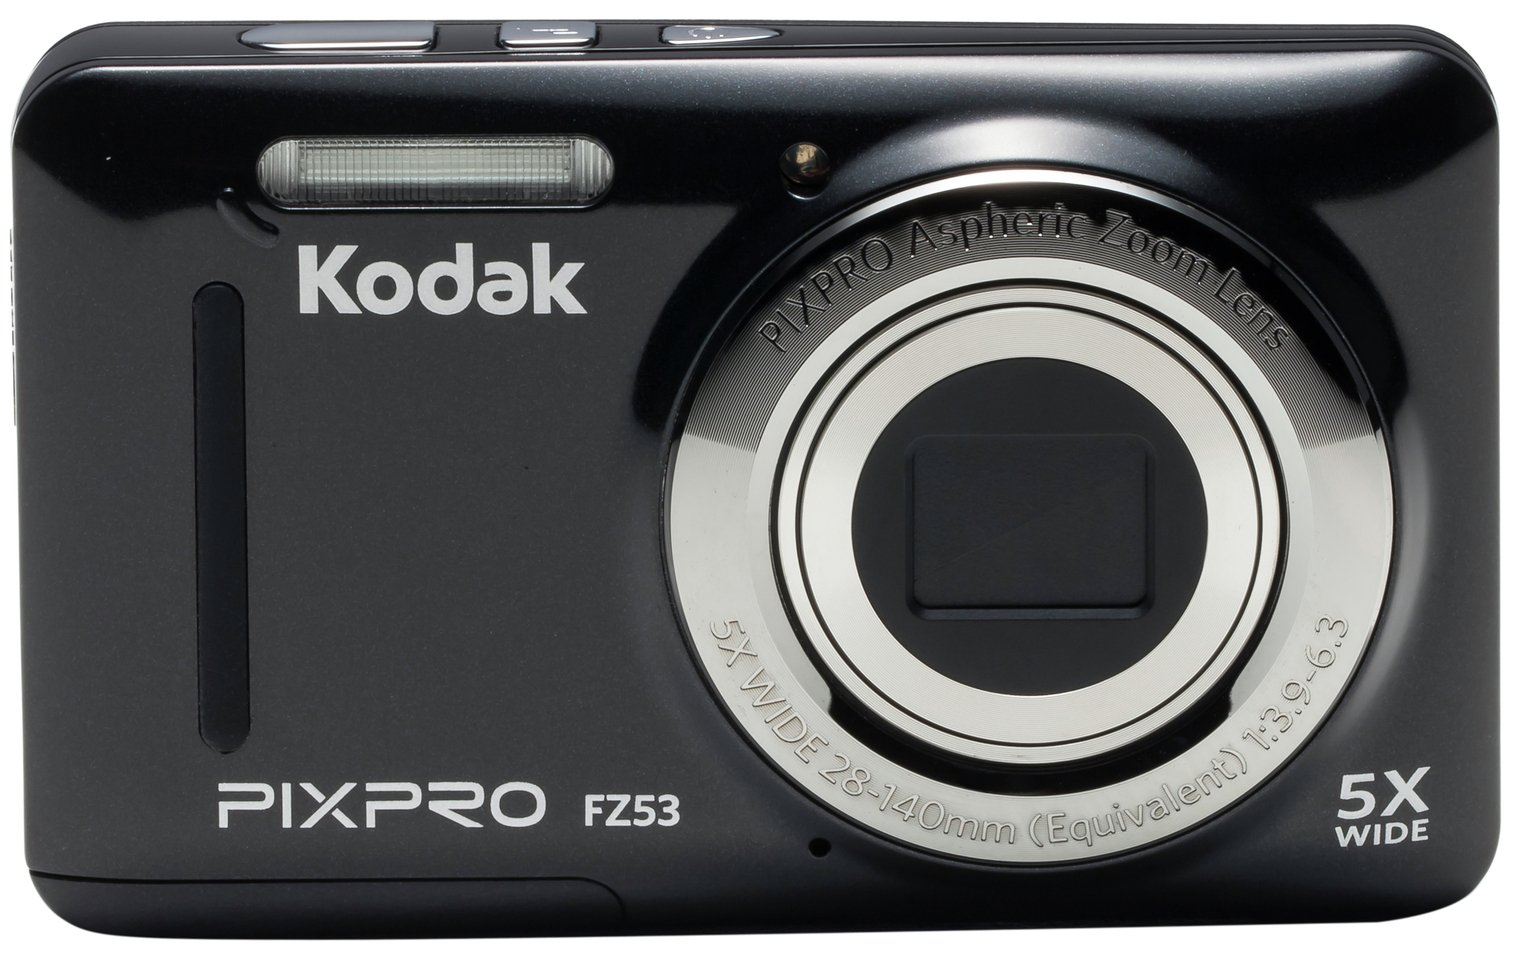 Kodak PixPro FZ53 Mirrorless Camera With 5.1-25.5mm Lens - Black